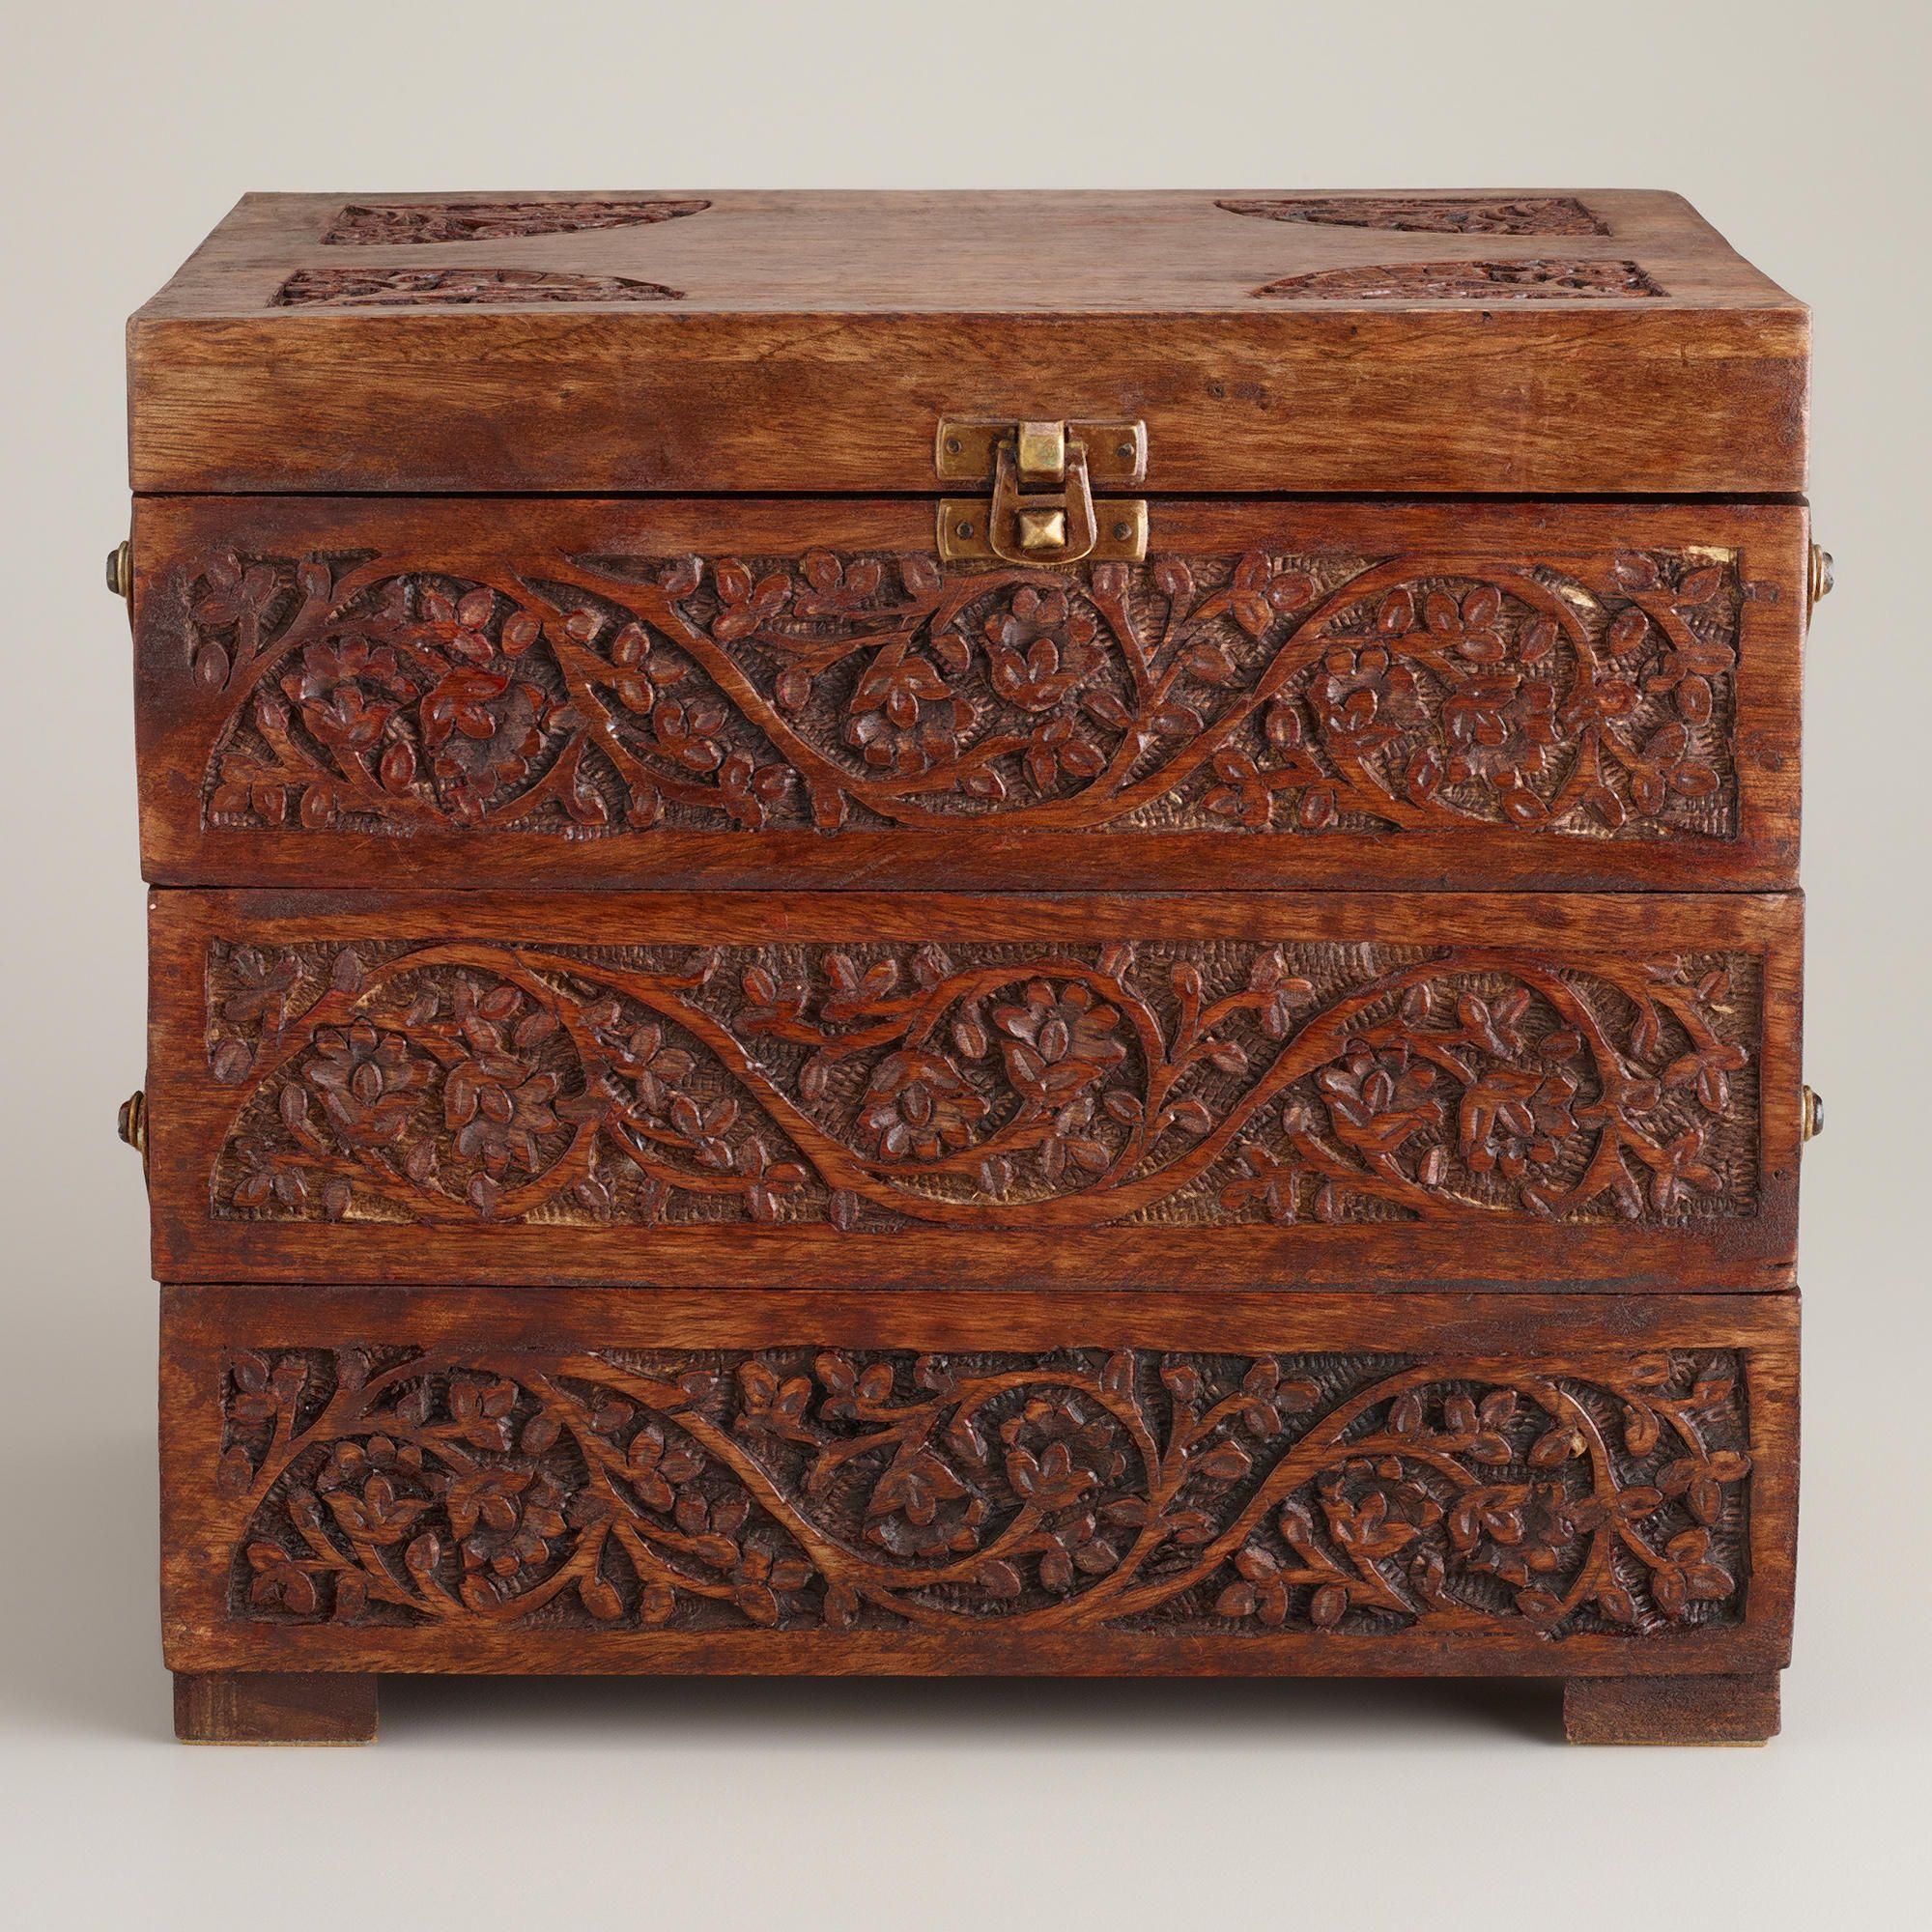 World Market Jewelry Box New Carved Wood Tiered Jewelry Box  World Market  Want  Pinterest Review